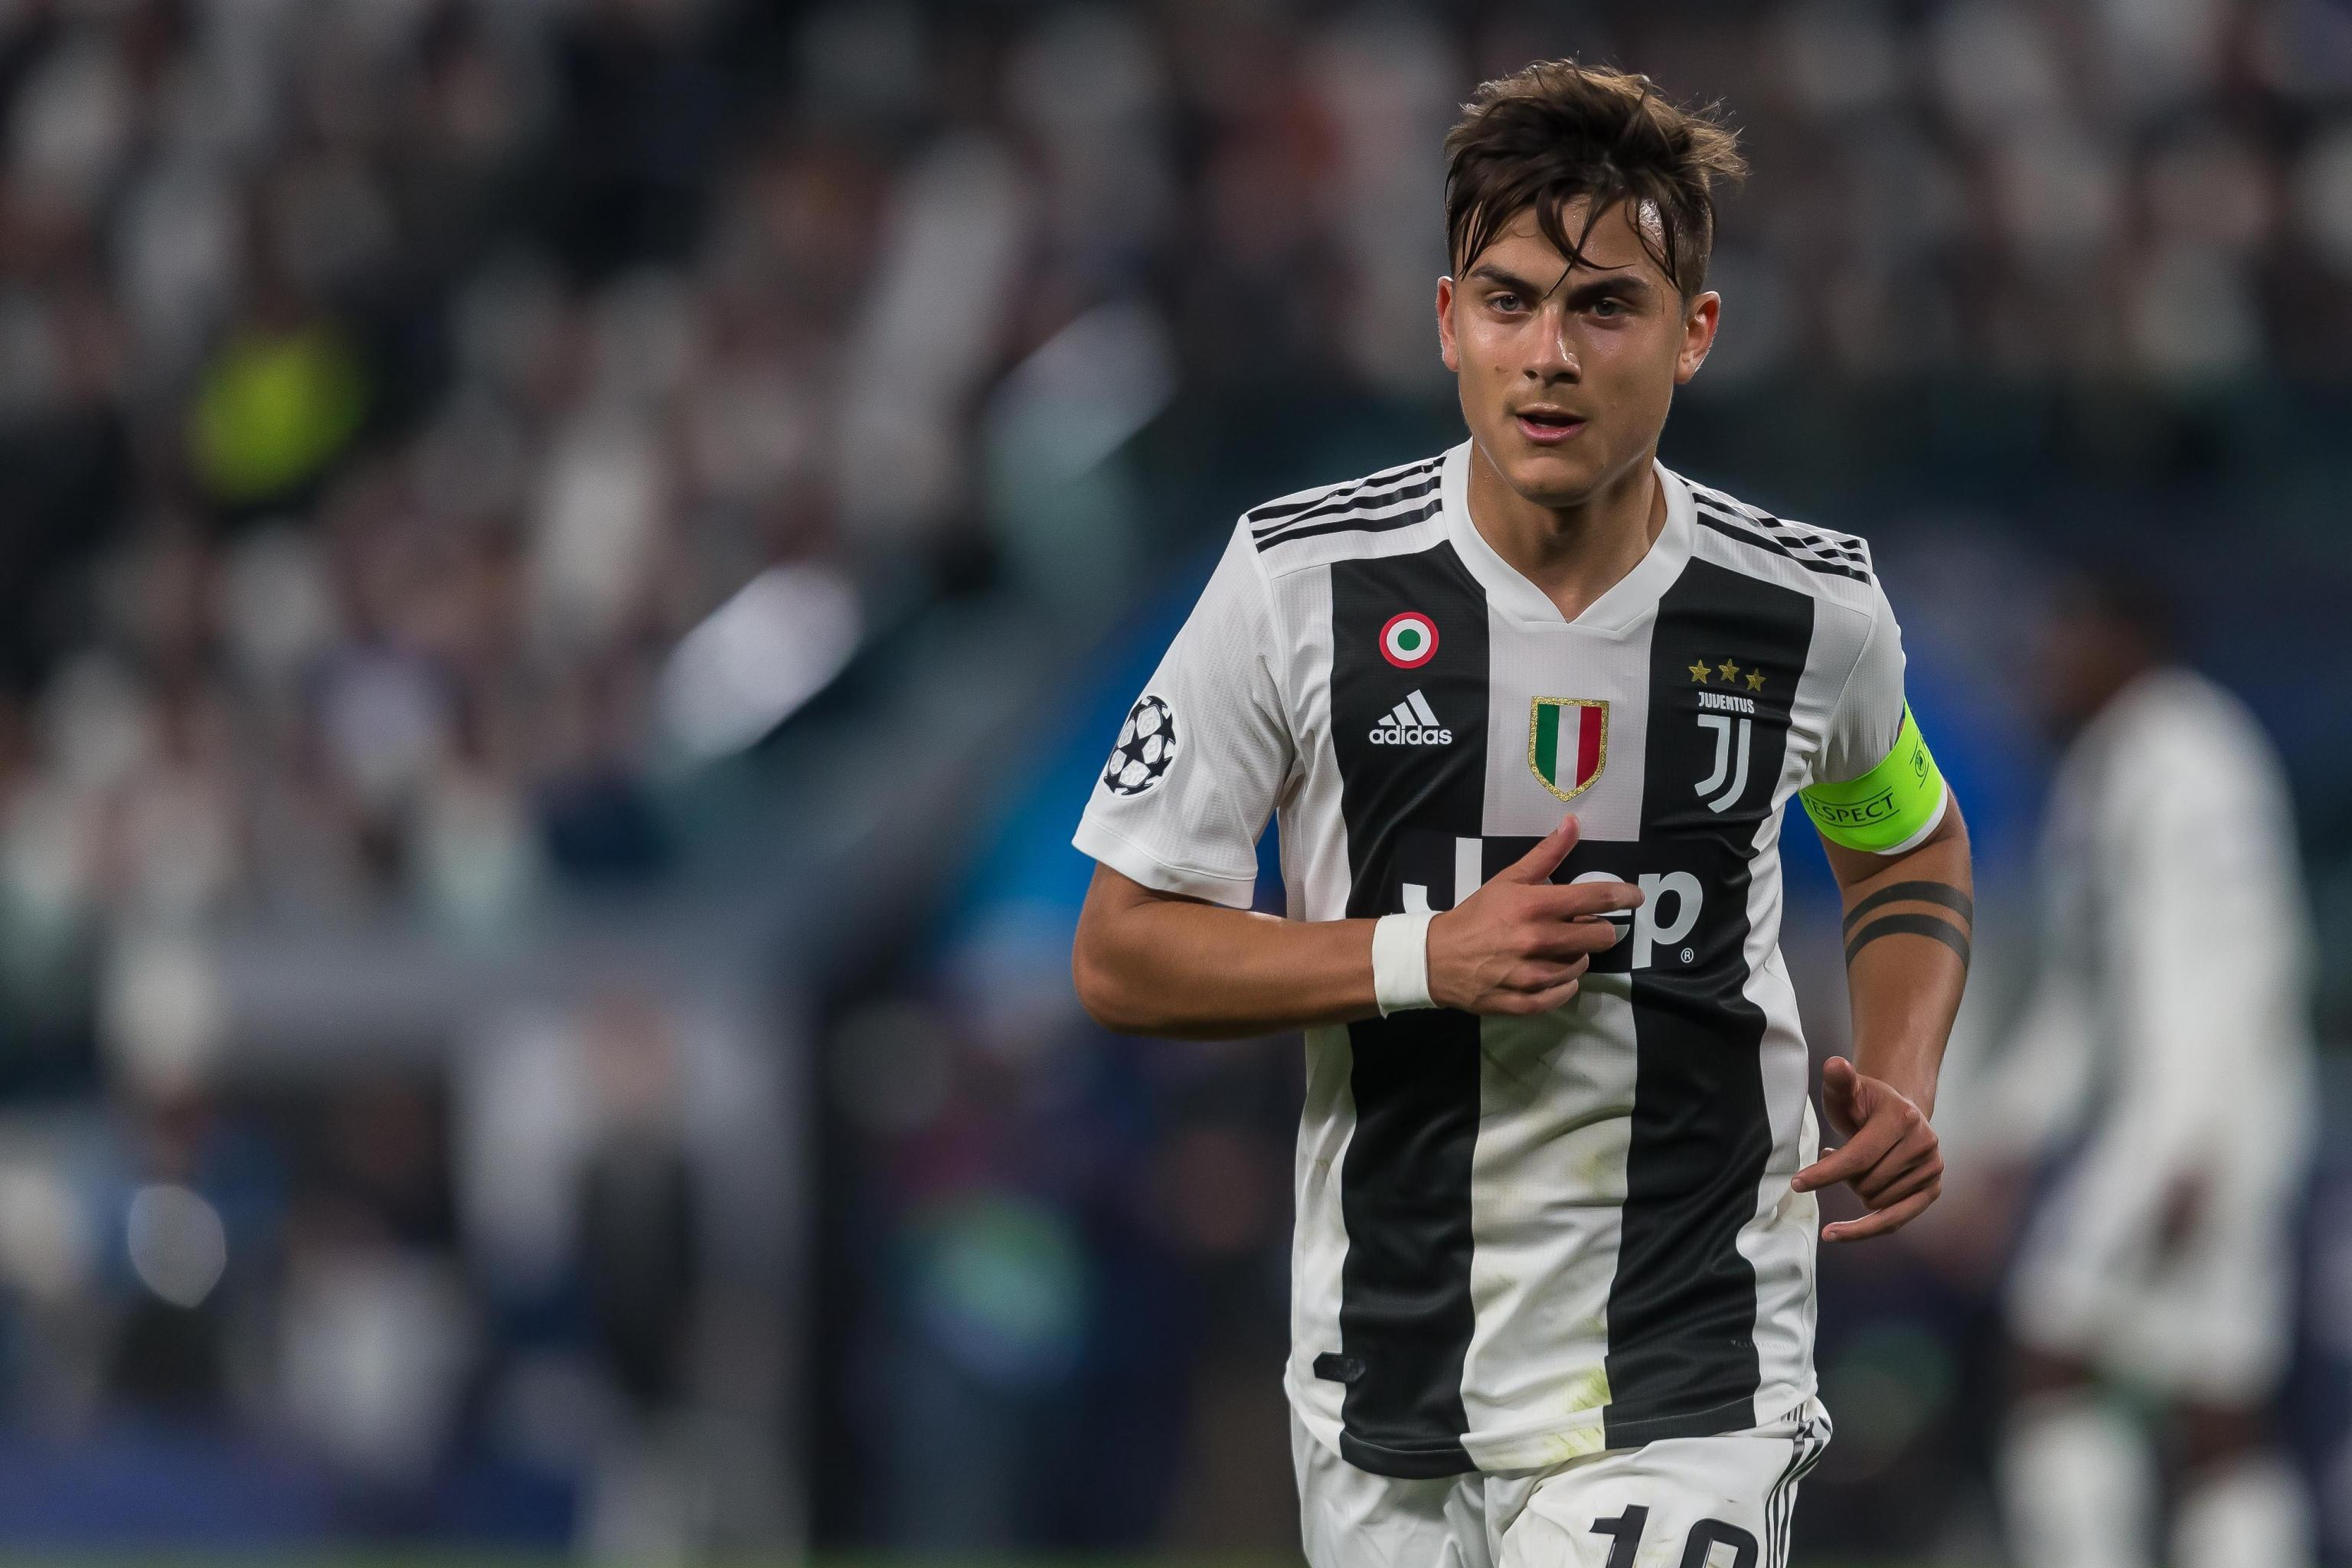 Paulo Dybala Praises Playing With Cristiano Ronaldo Amid Juventus Exit Rumours Bleacher Report Latest News Videos And Highlights